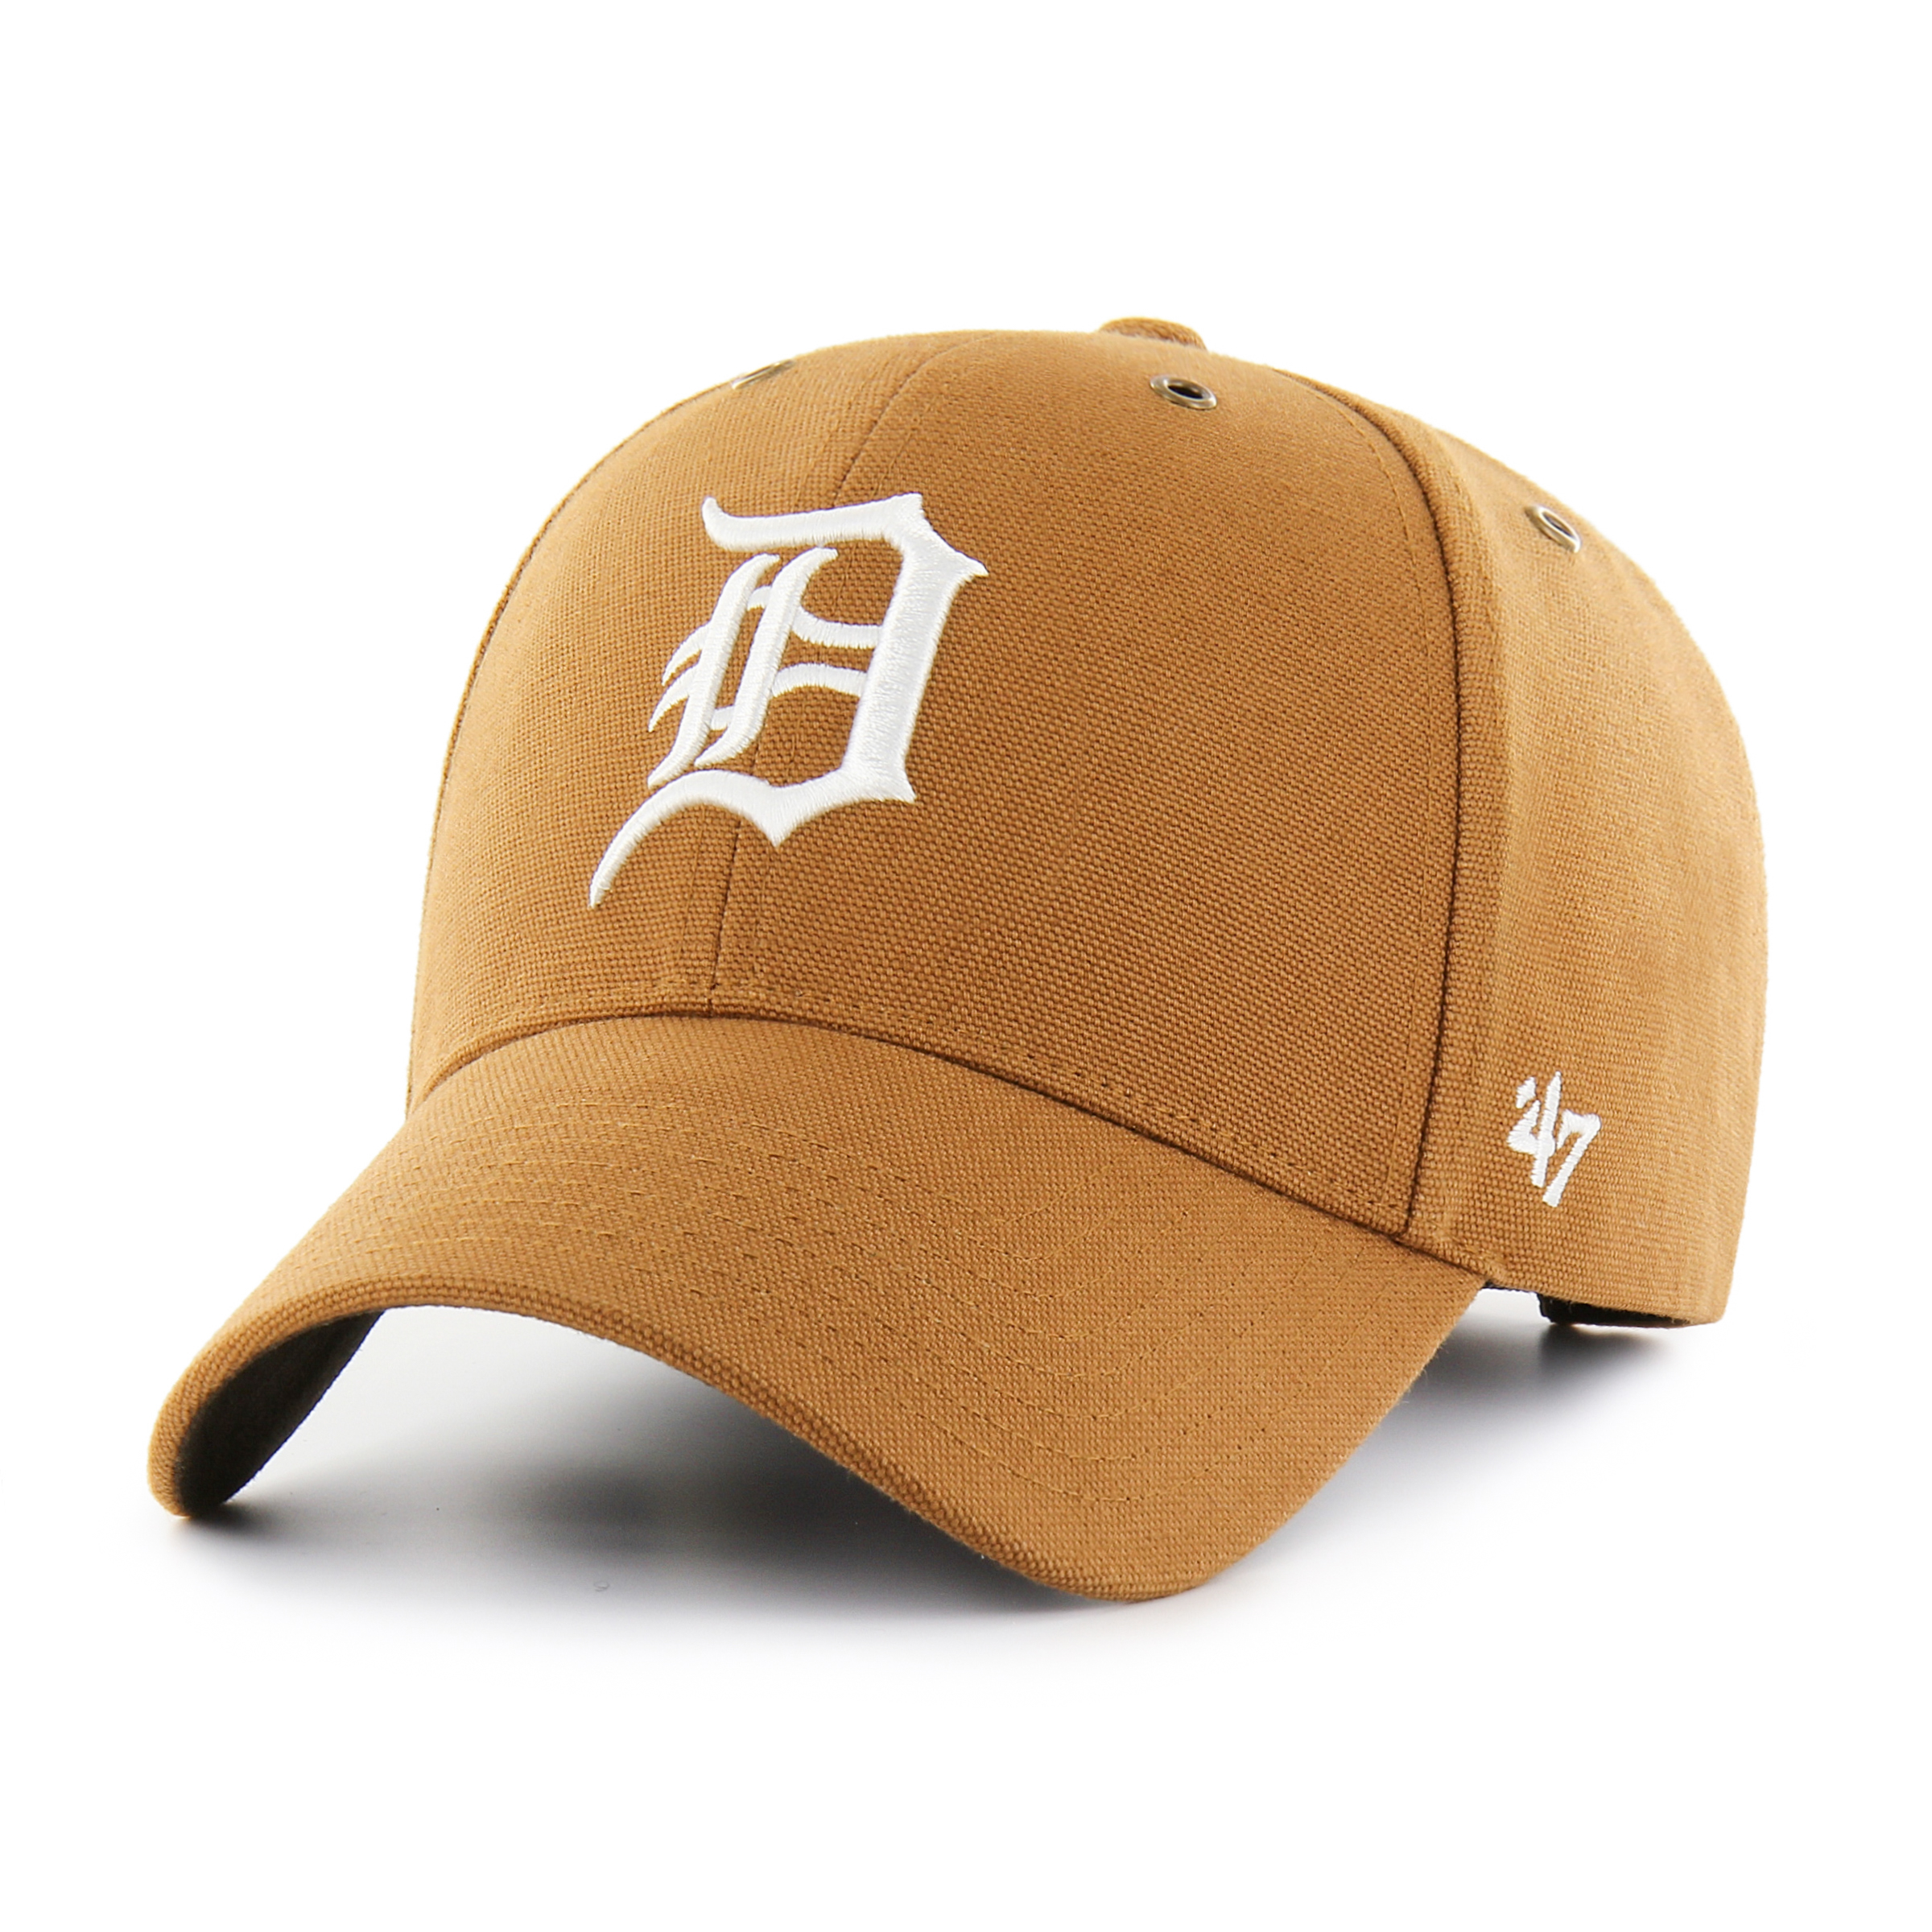 c9833d321a57b Carhartt and  47 Brand are creating a new Tigers collection - Bless ...